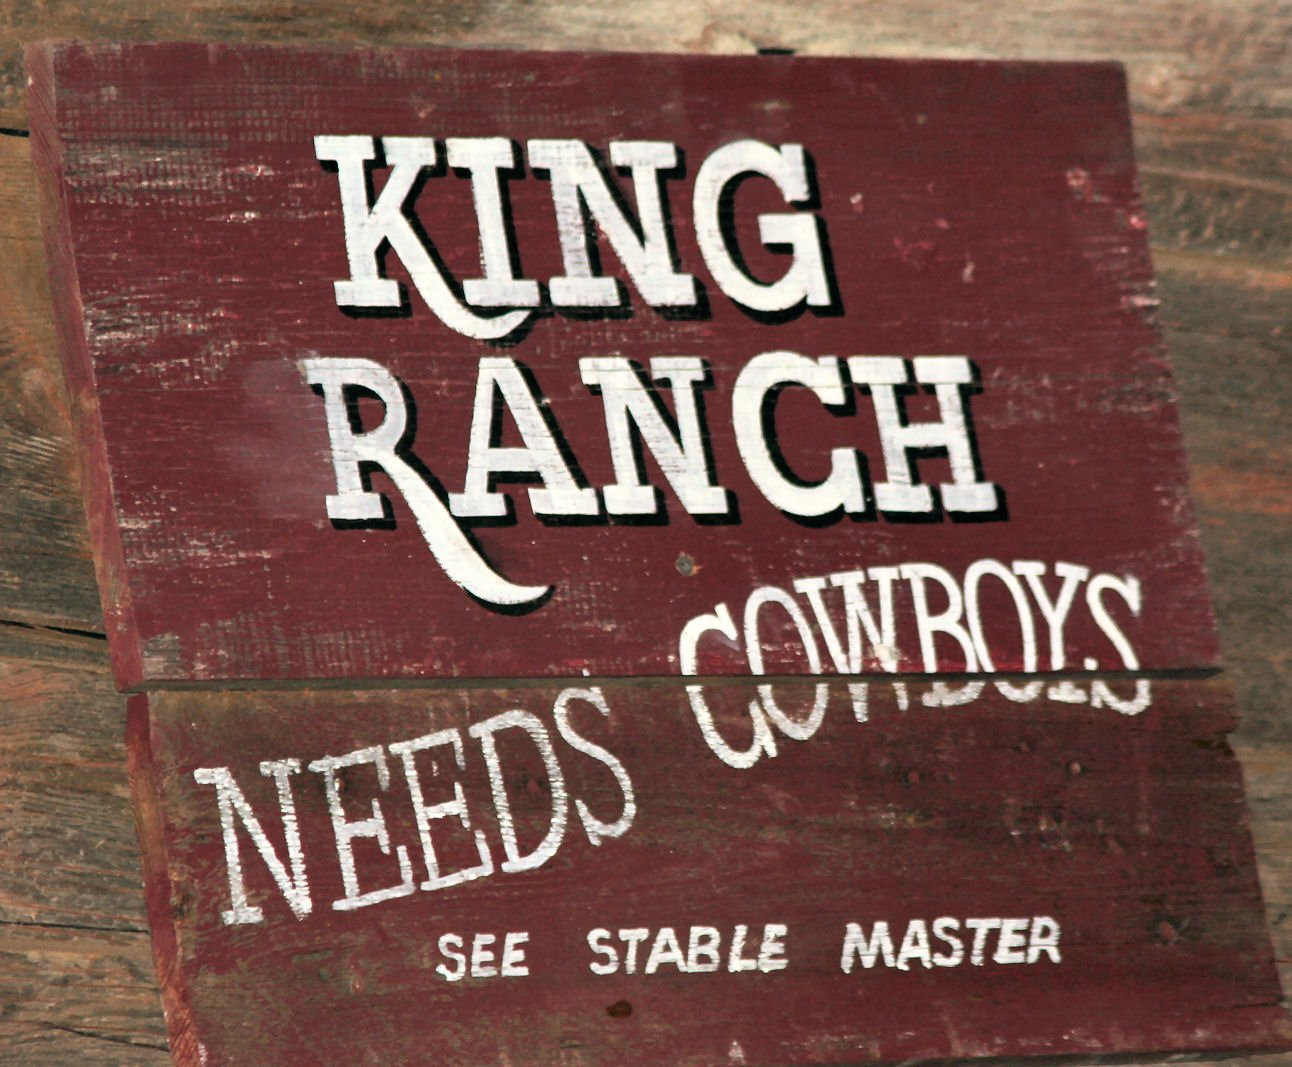 A ranch sign